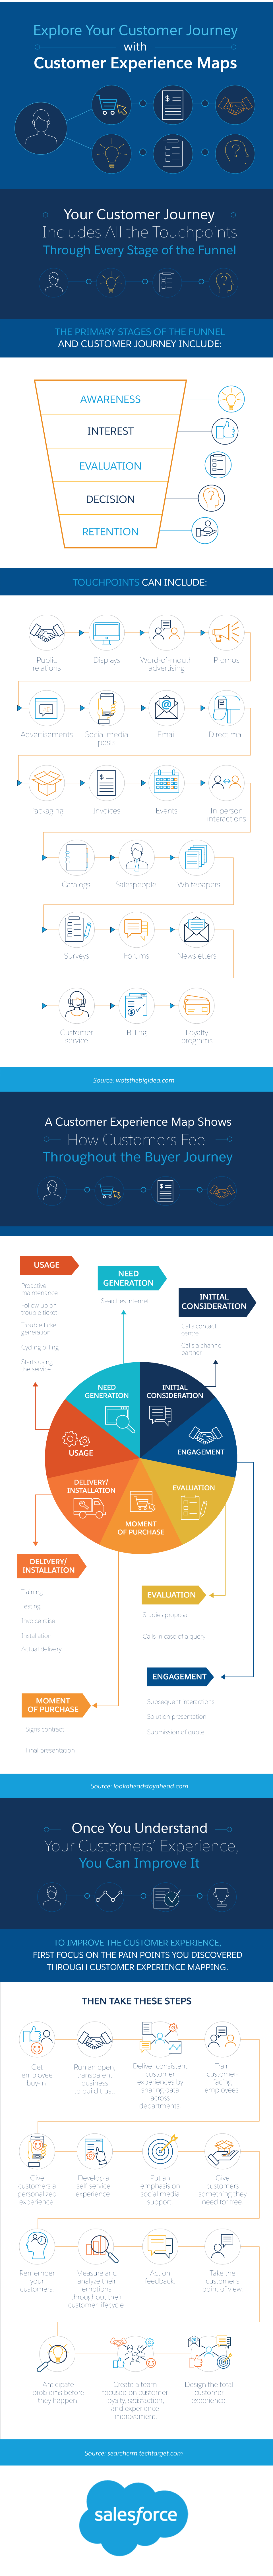 Explore Your Customer Journey with Customer Experience Maps